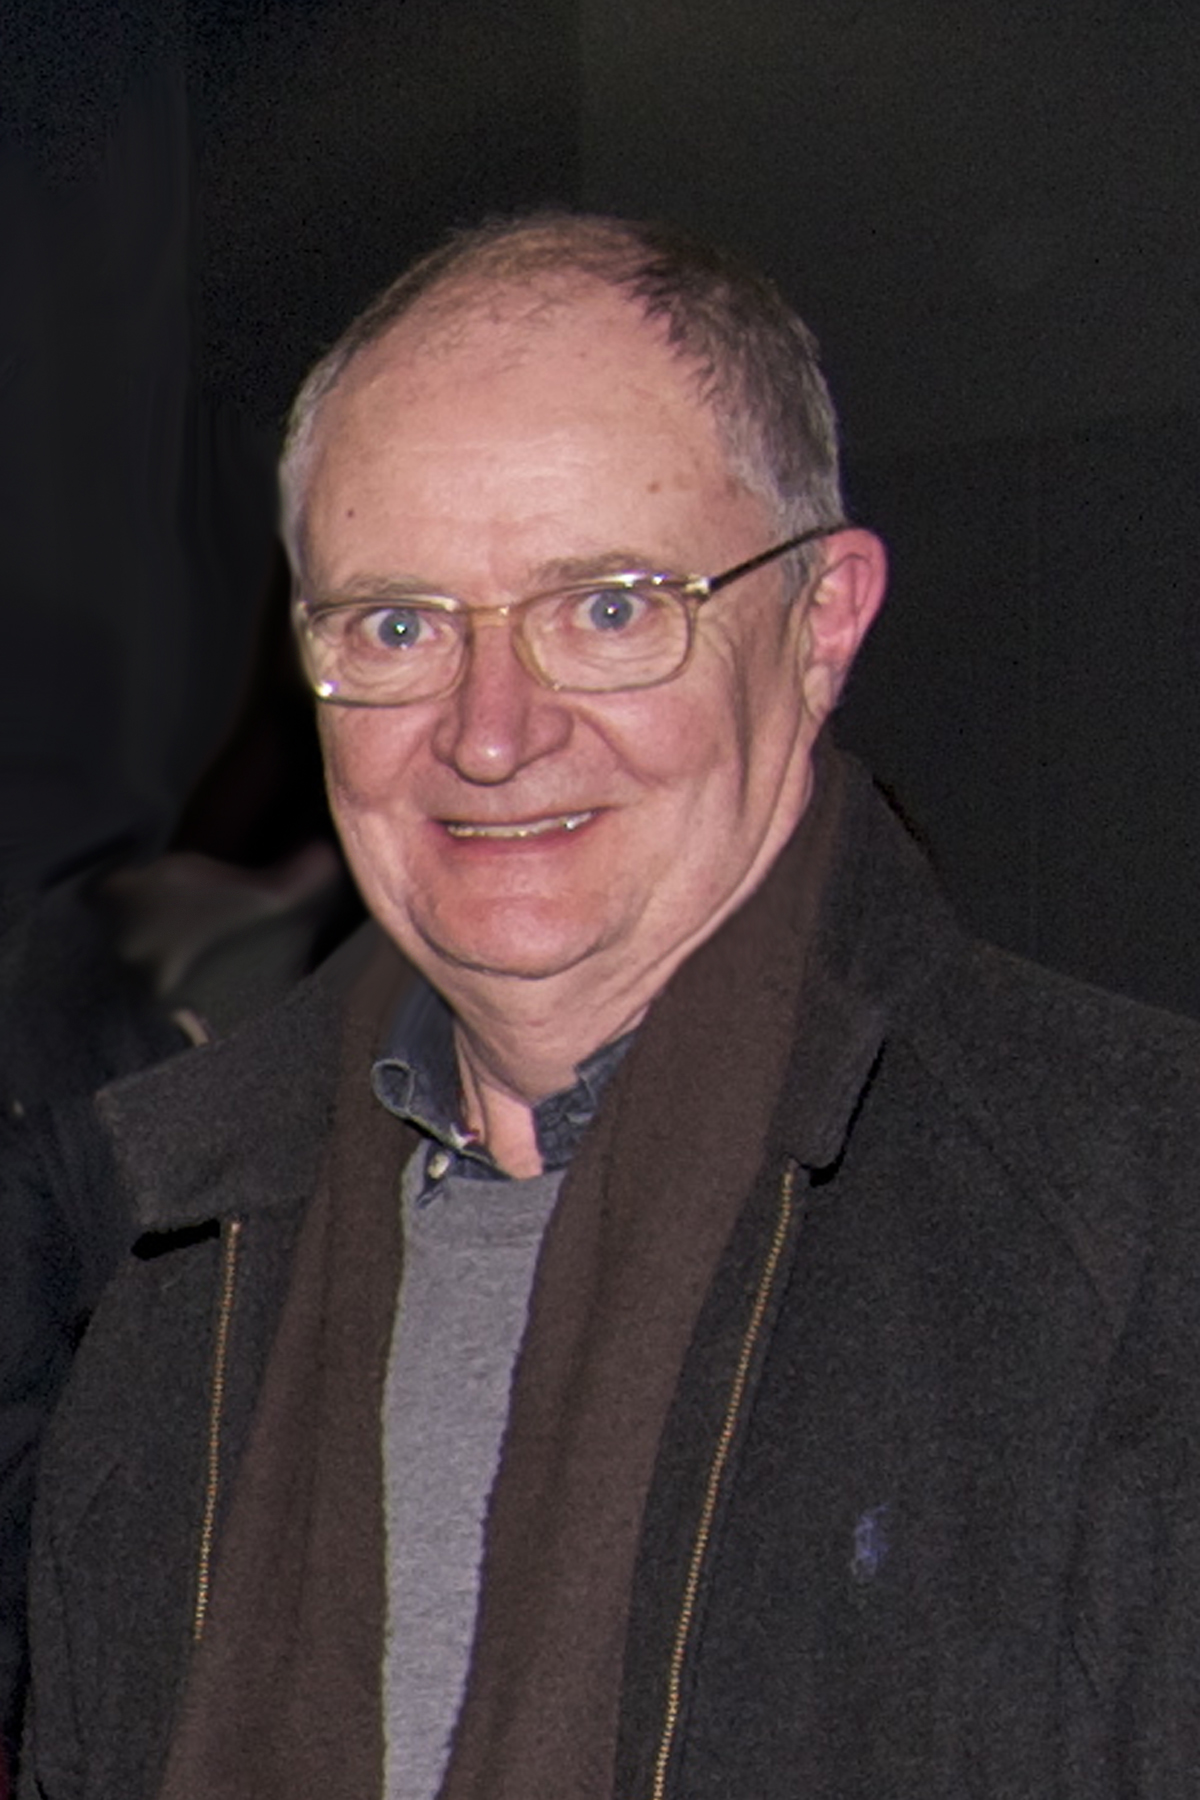 OUR PATRON: Jim Broadbent